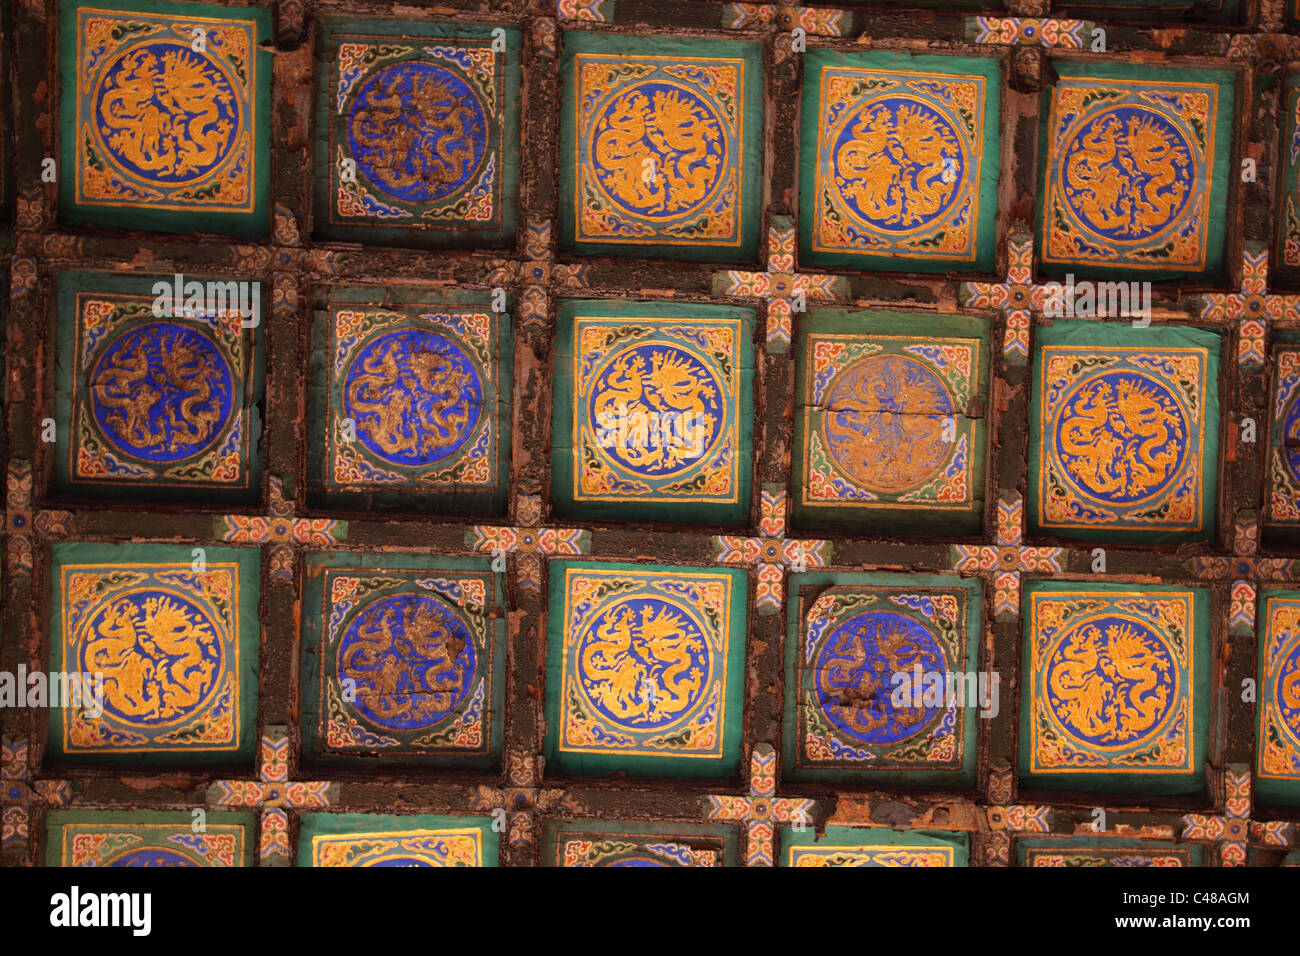 Ceiling detail, Forbidden City, Beijing, China - Stock Image